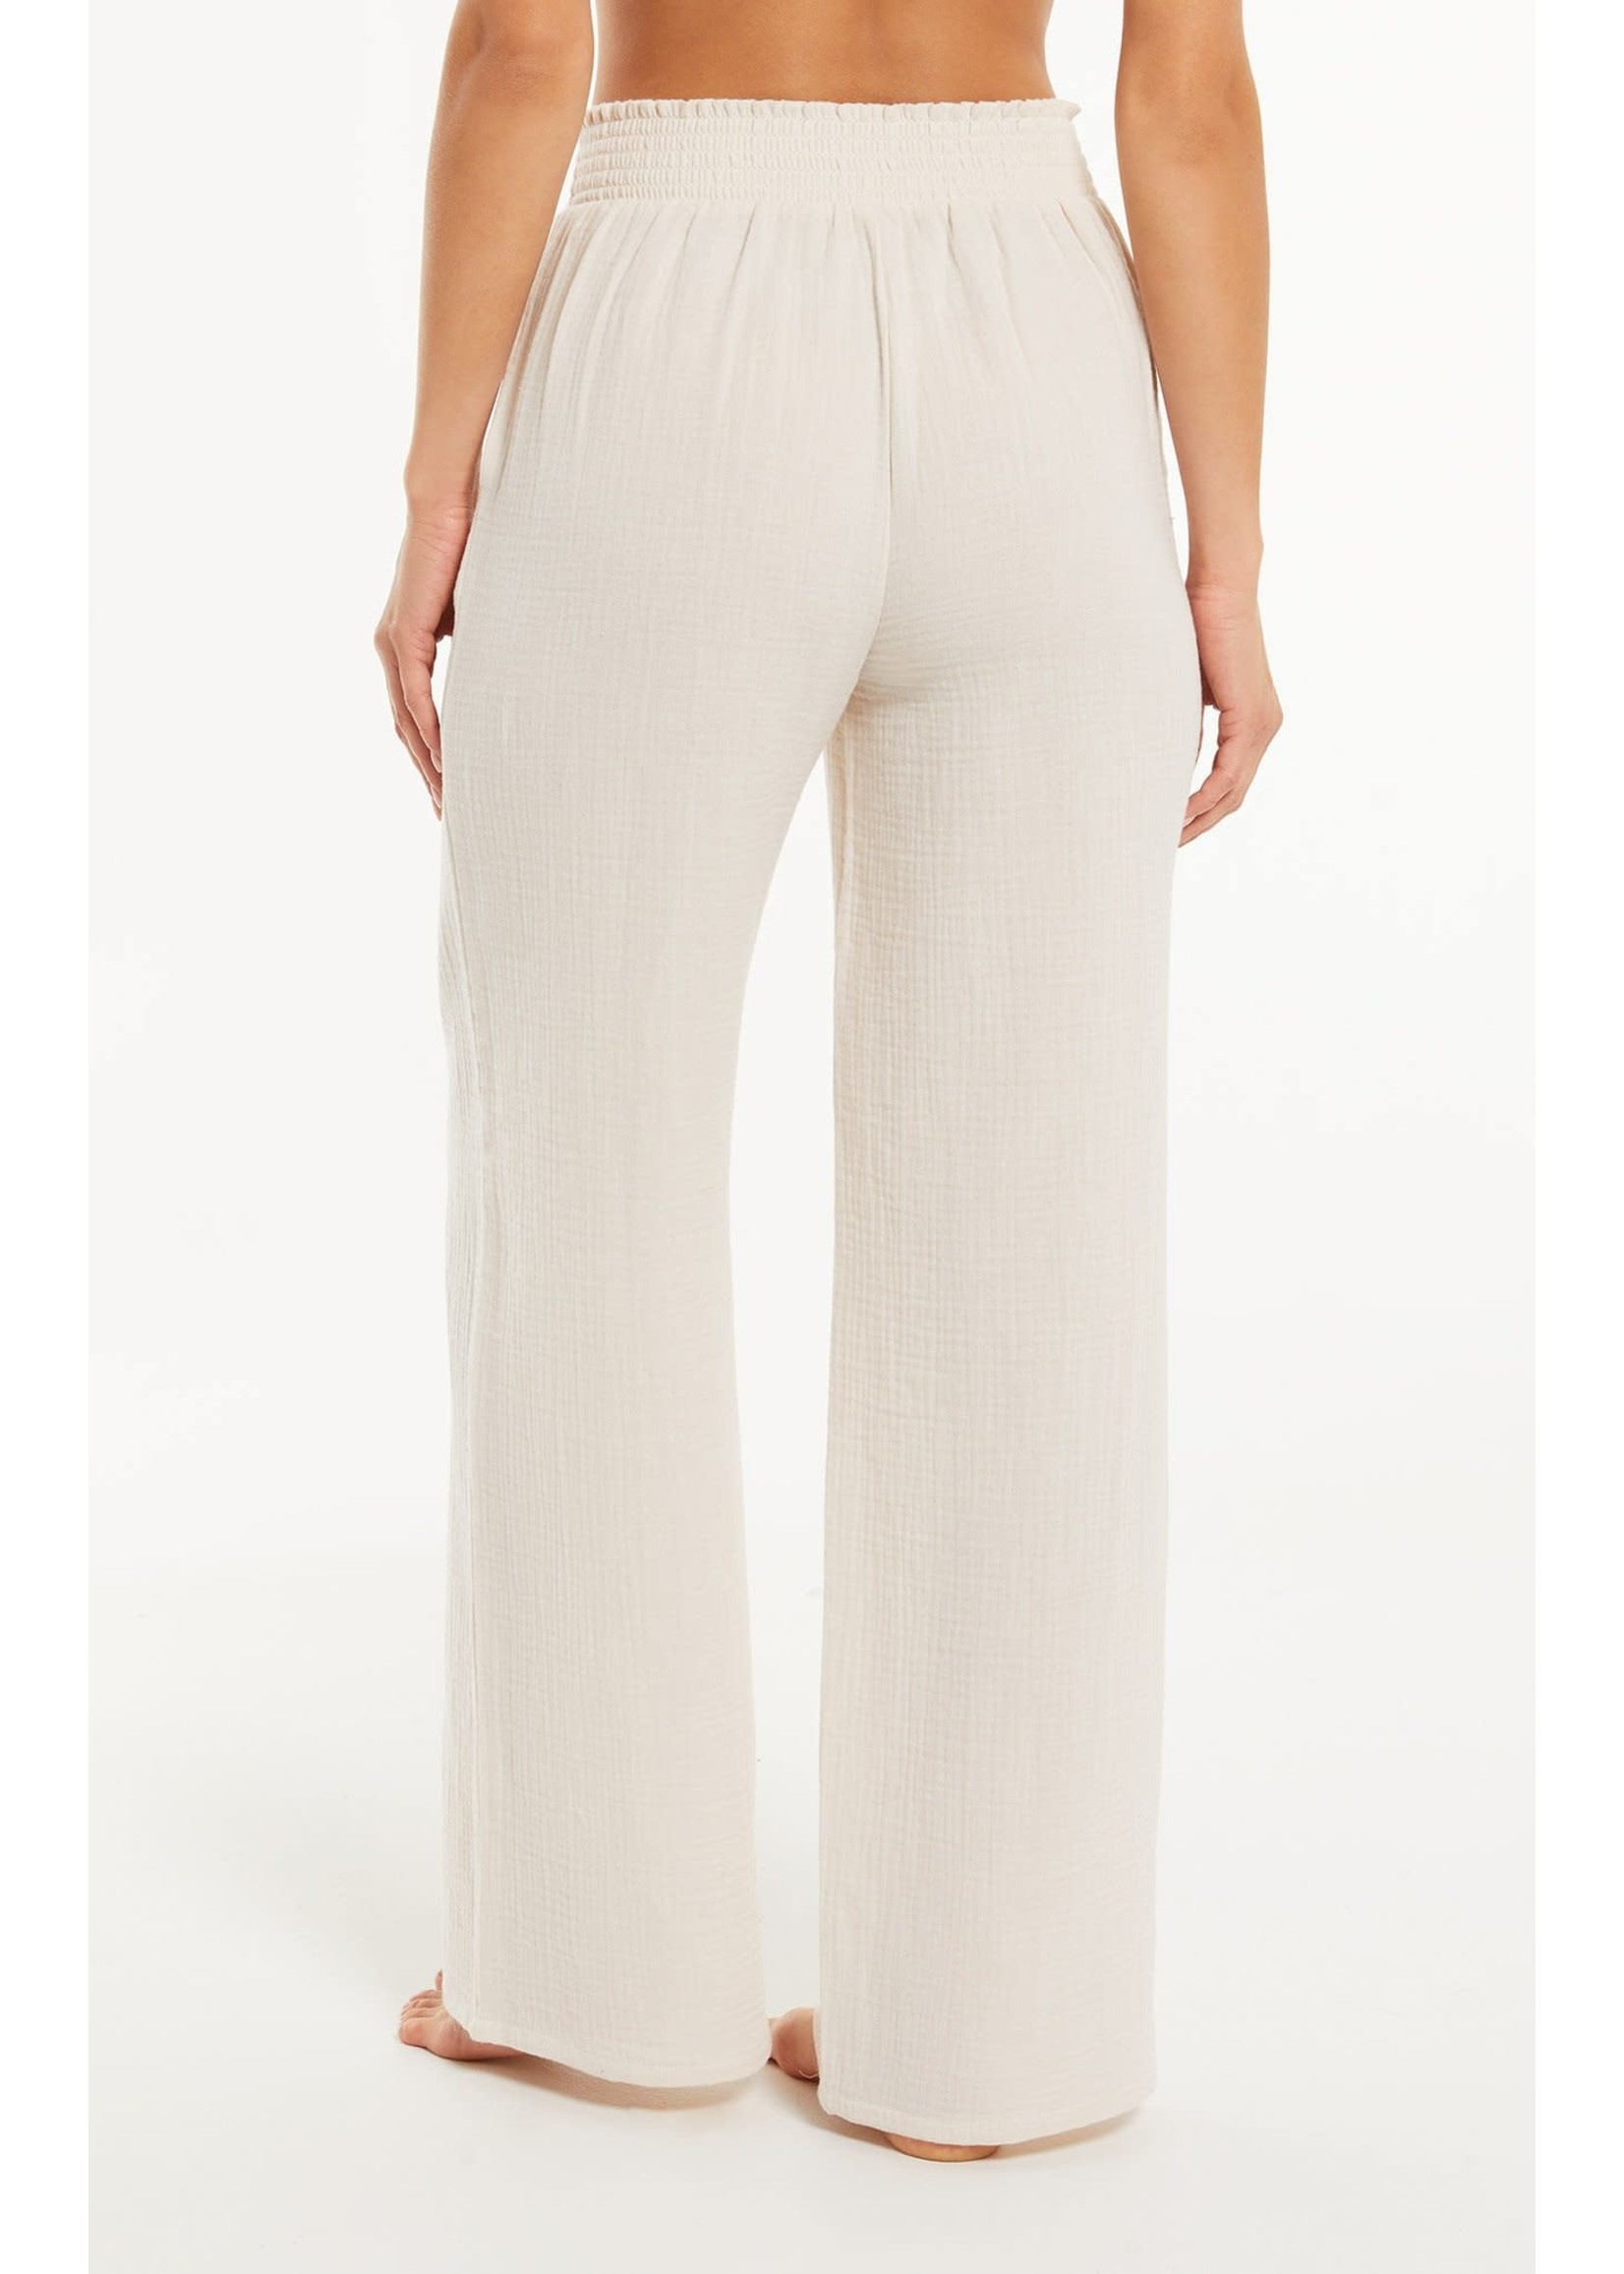 Z Supply Down to Earth Crop Pant - ZLP212624